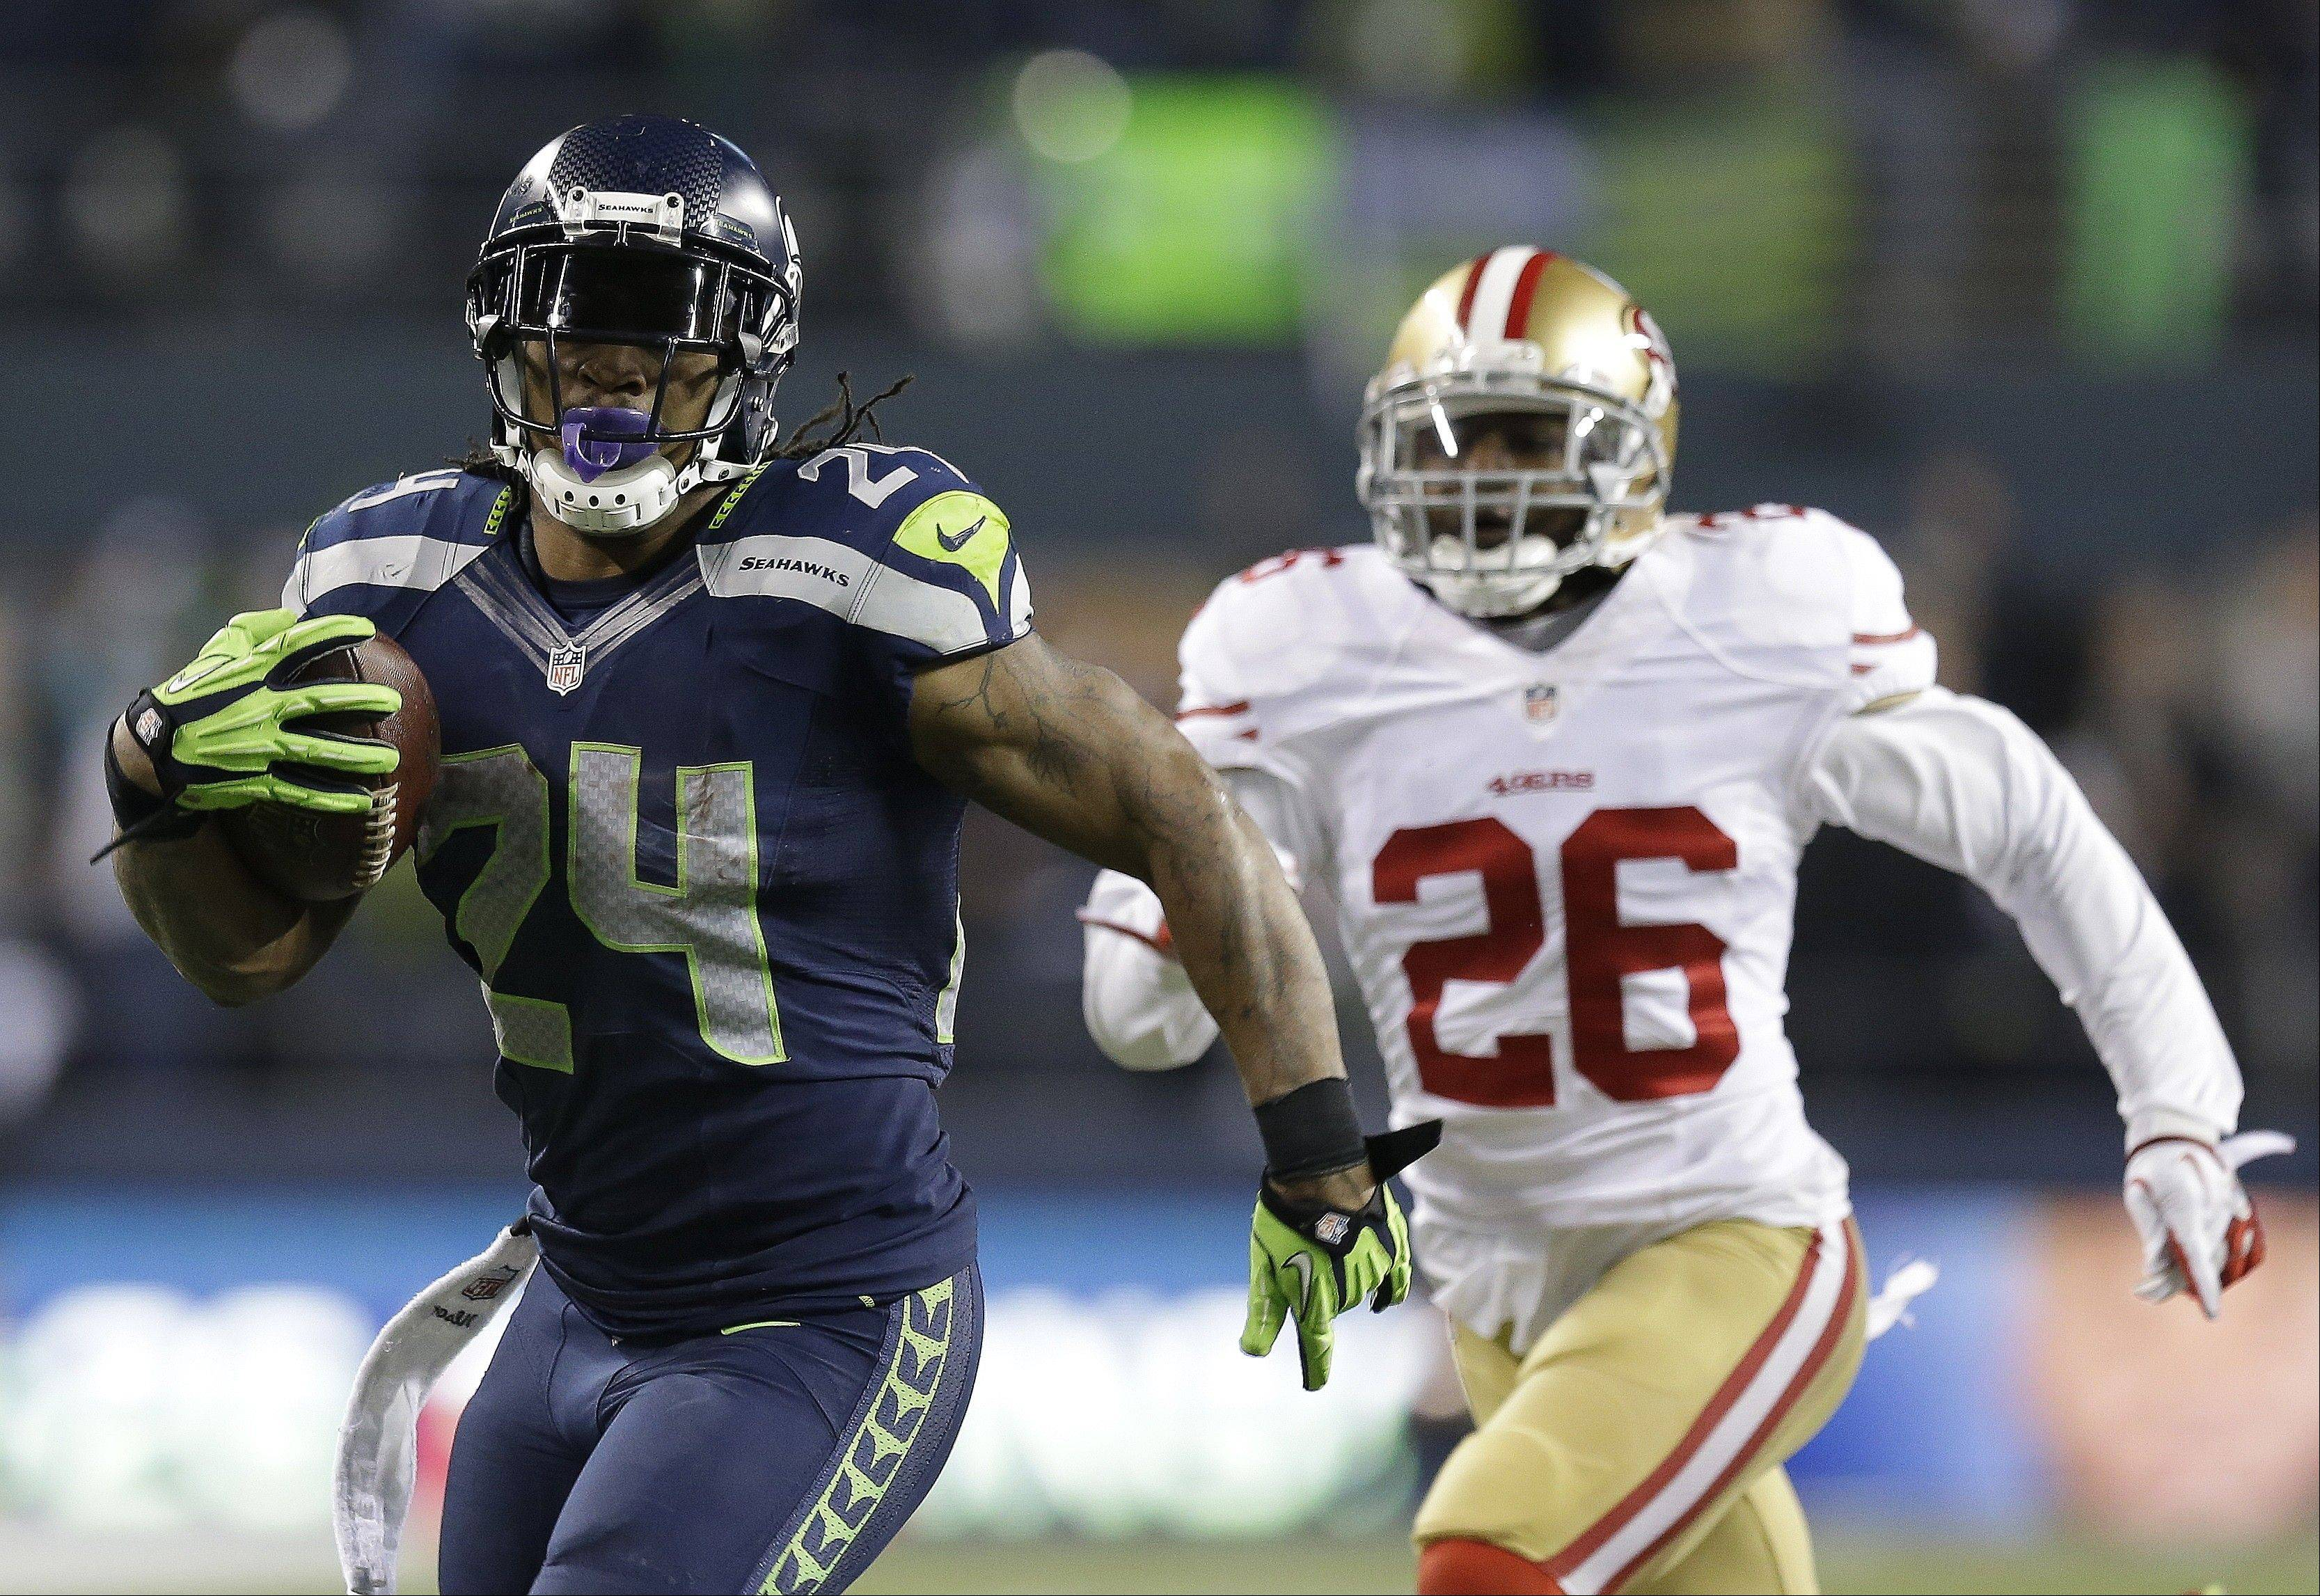 Seattle Seahawks' Marshawn Lynch (24) breaks away from San Francisco 49ers' Tramaine Brock (26) for a touch-down run during the second half of the NFL football NFC Championship game, Sunday, Jan. 19, 2014, in Seattle.